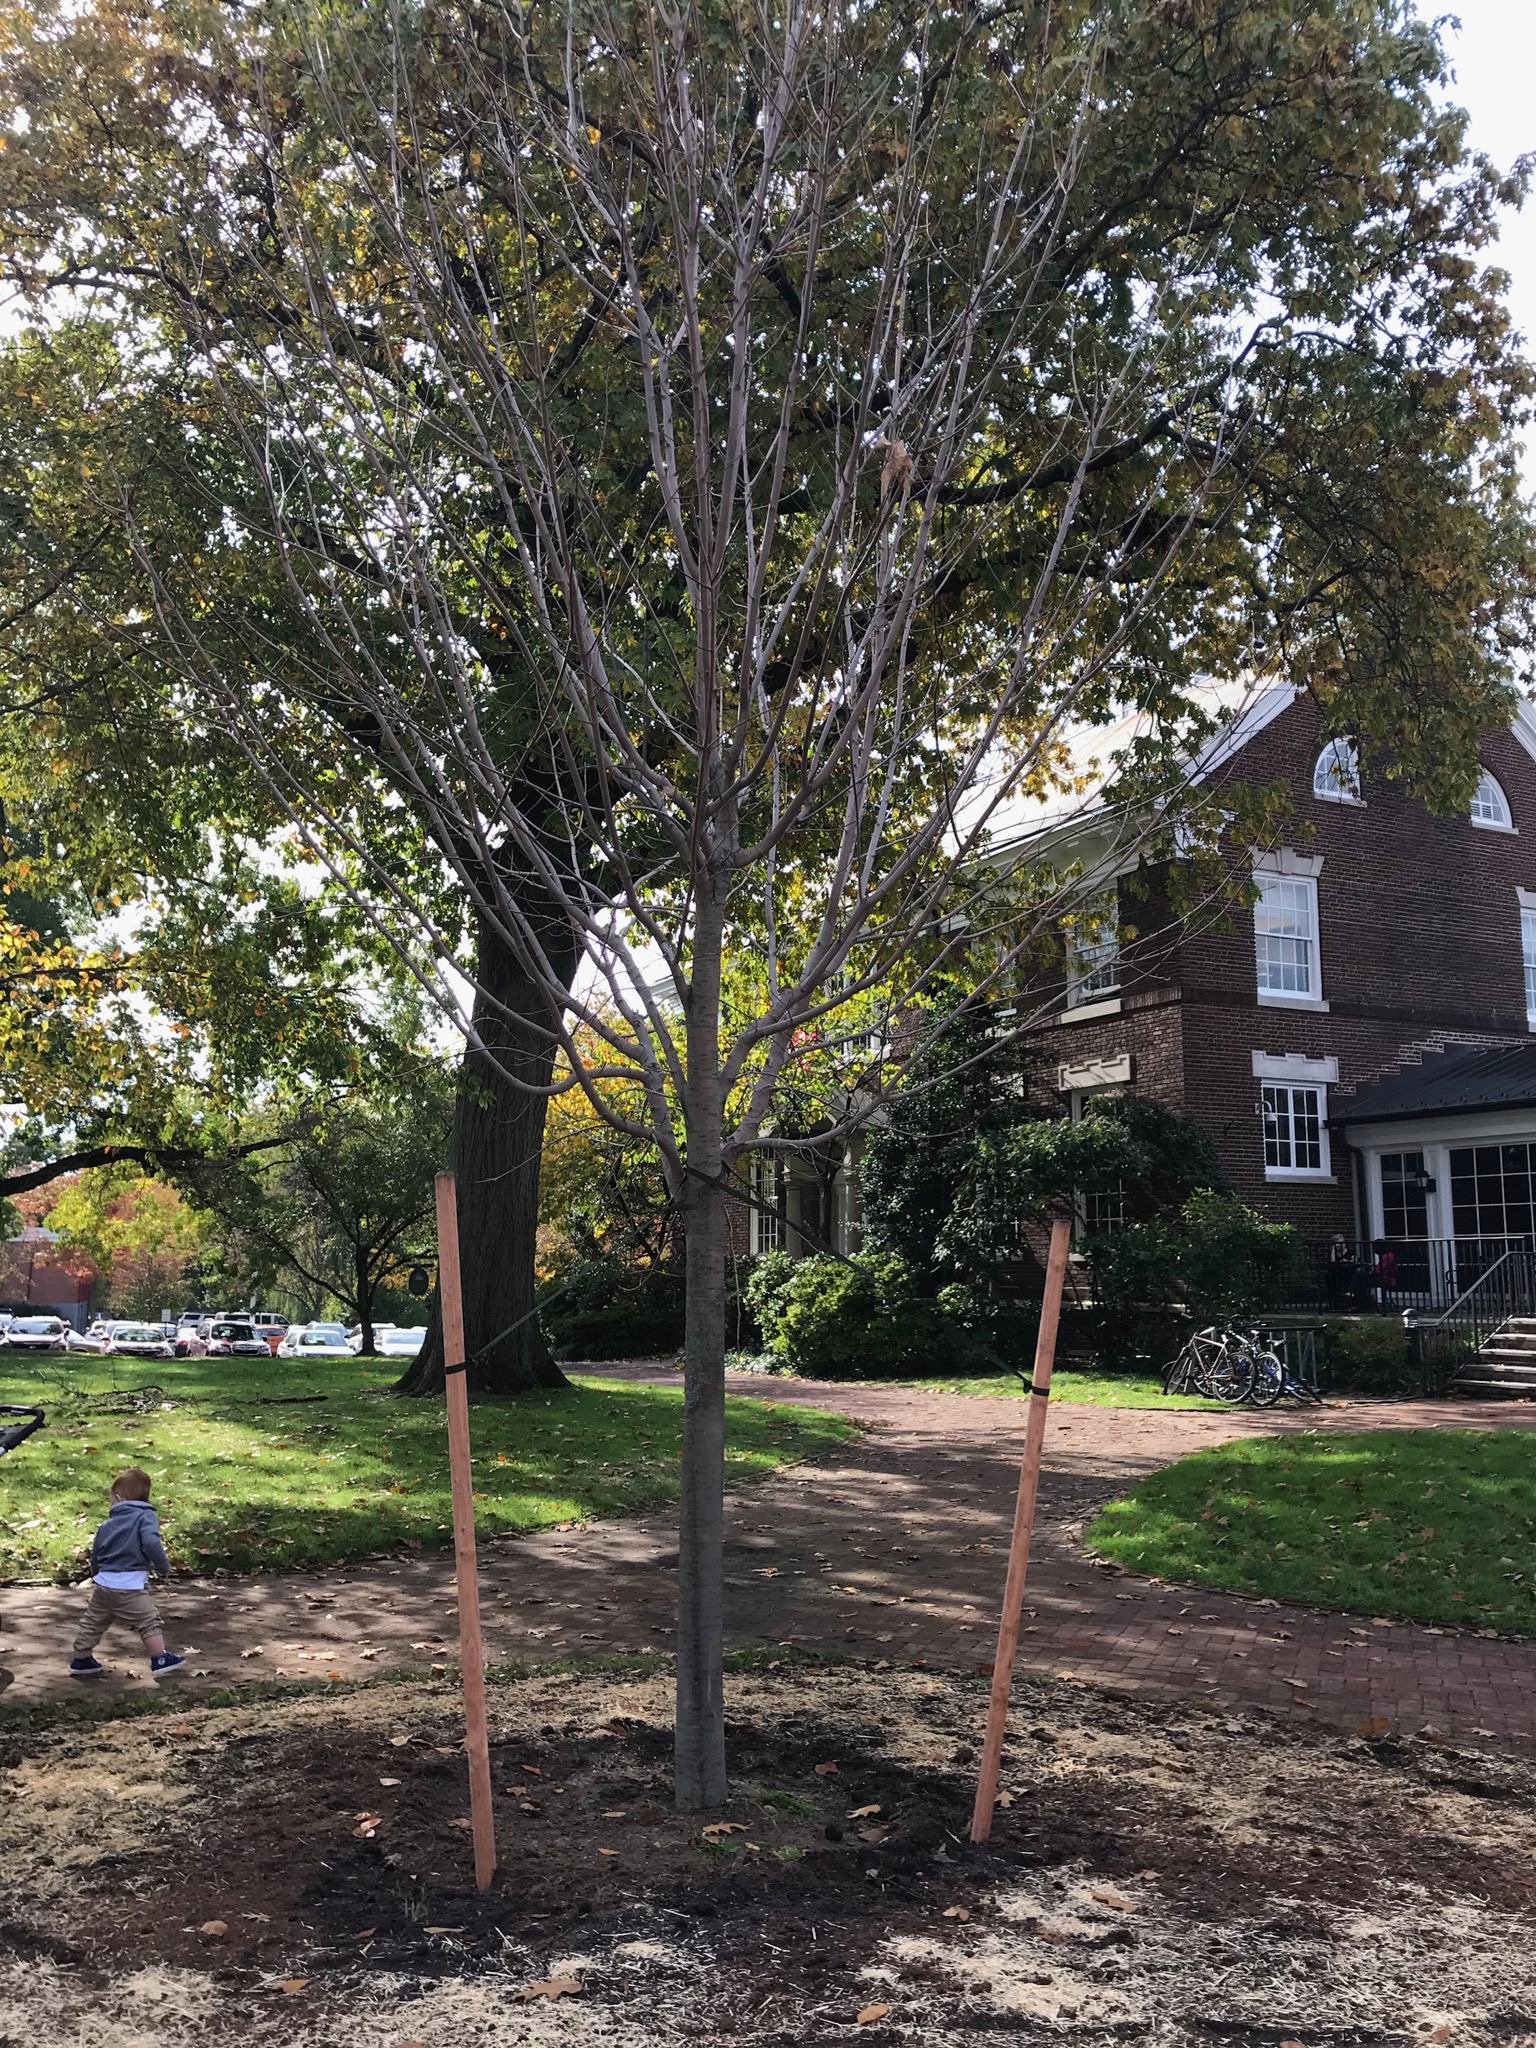 Village Green: A Sugar Maple replaces a Maple that had died